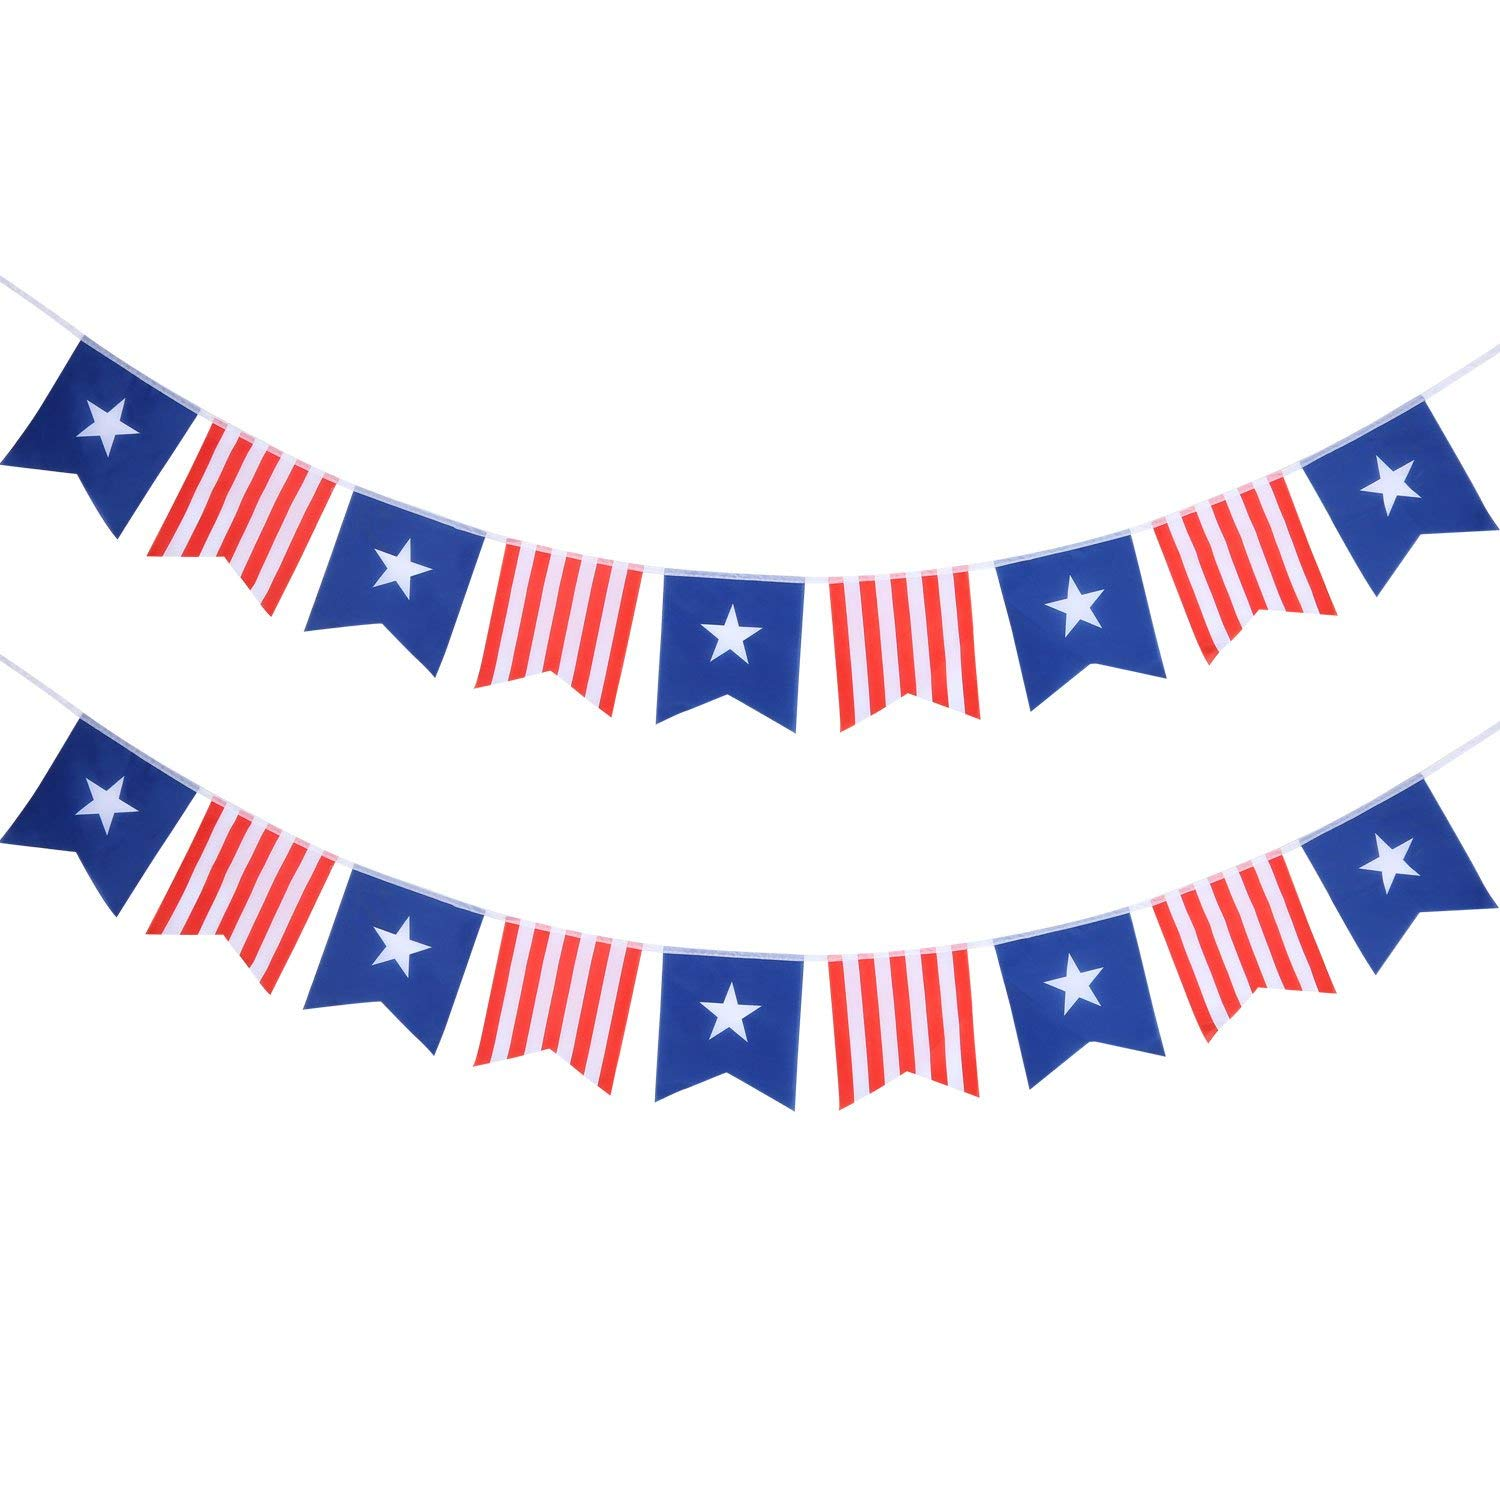 BBTO 2 Pack Star Streamers Banner for Nautical Wedding Memorial Day Veterans Day Birthday Celebration Labor Day Holiday Party Decorations (Red White Blue)